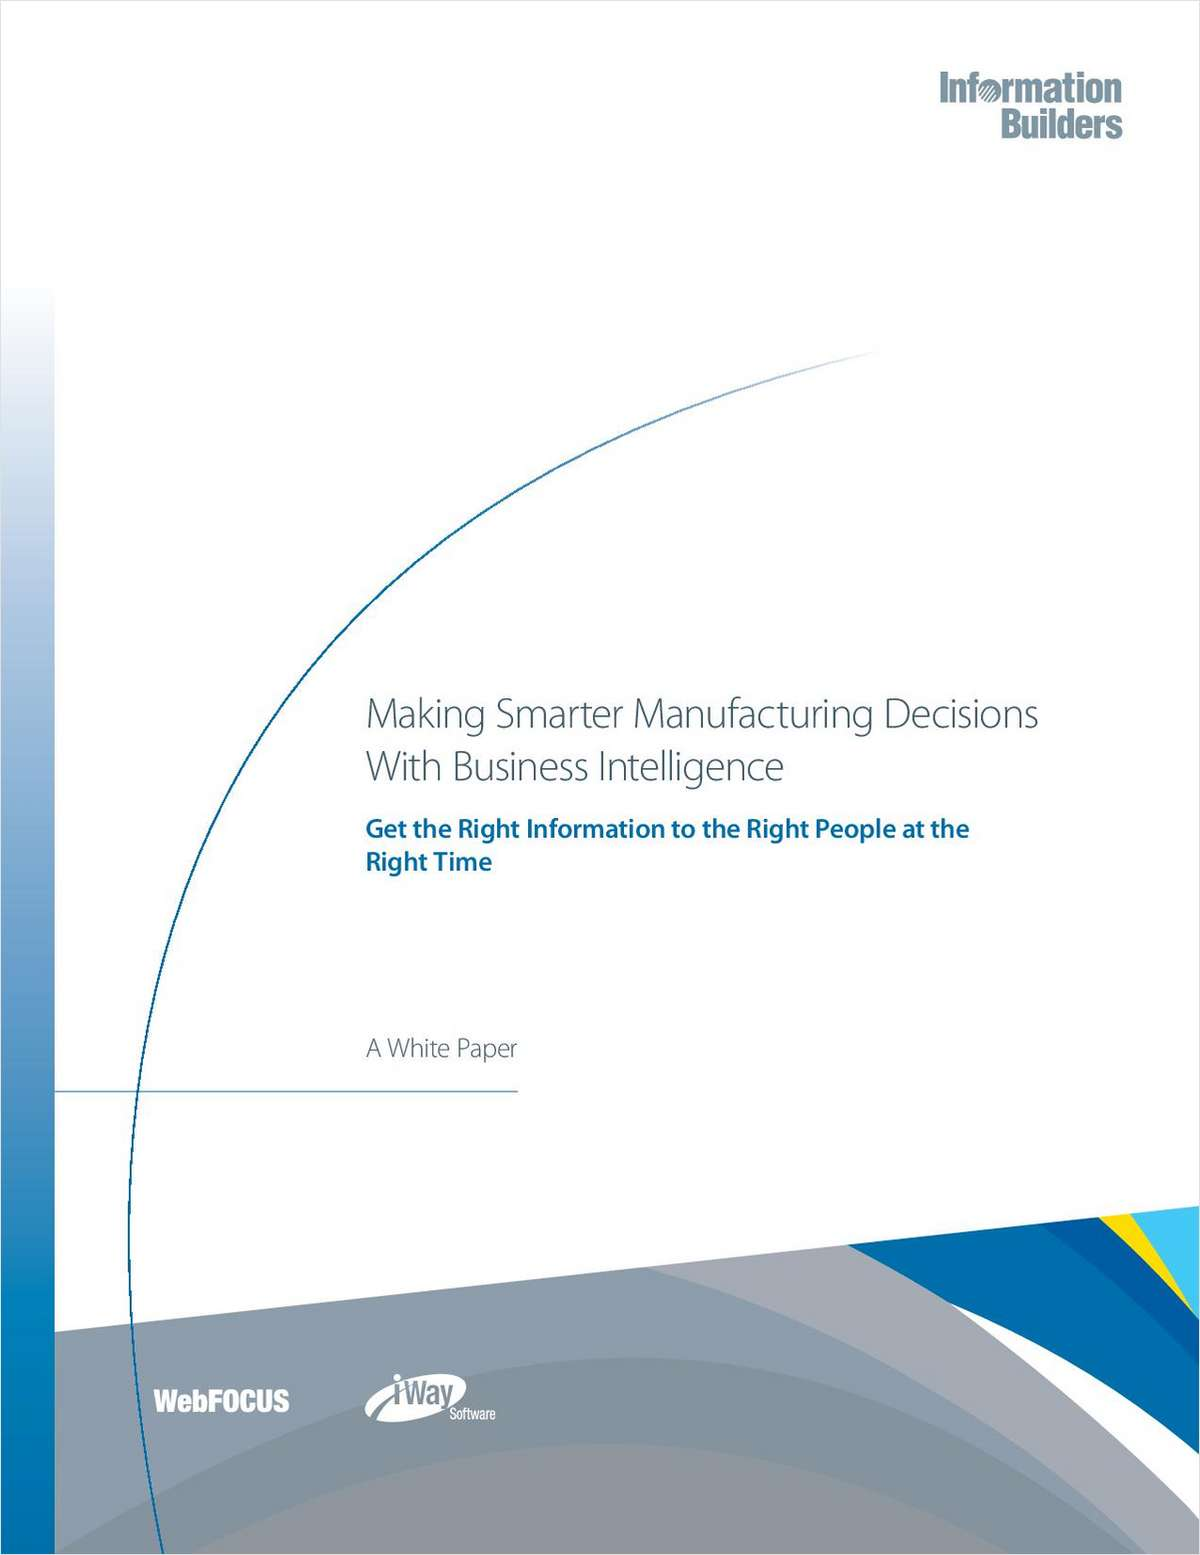 Making Smarter Manufacturing Decisions With Business Intelligence